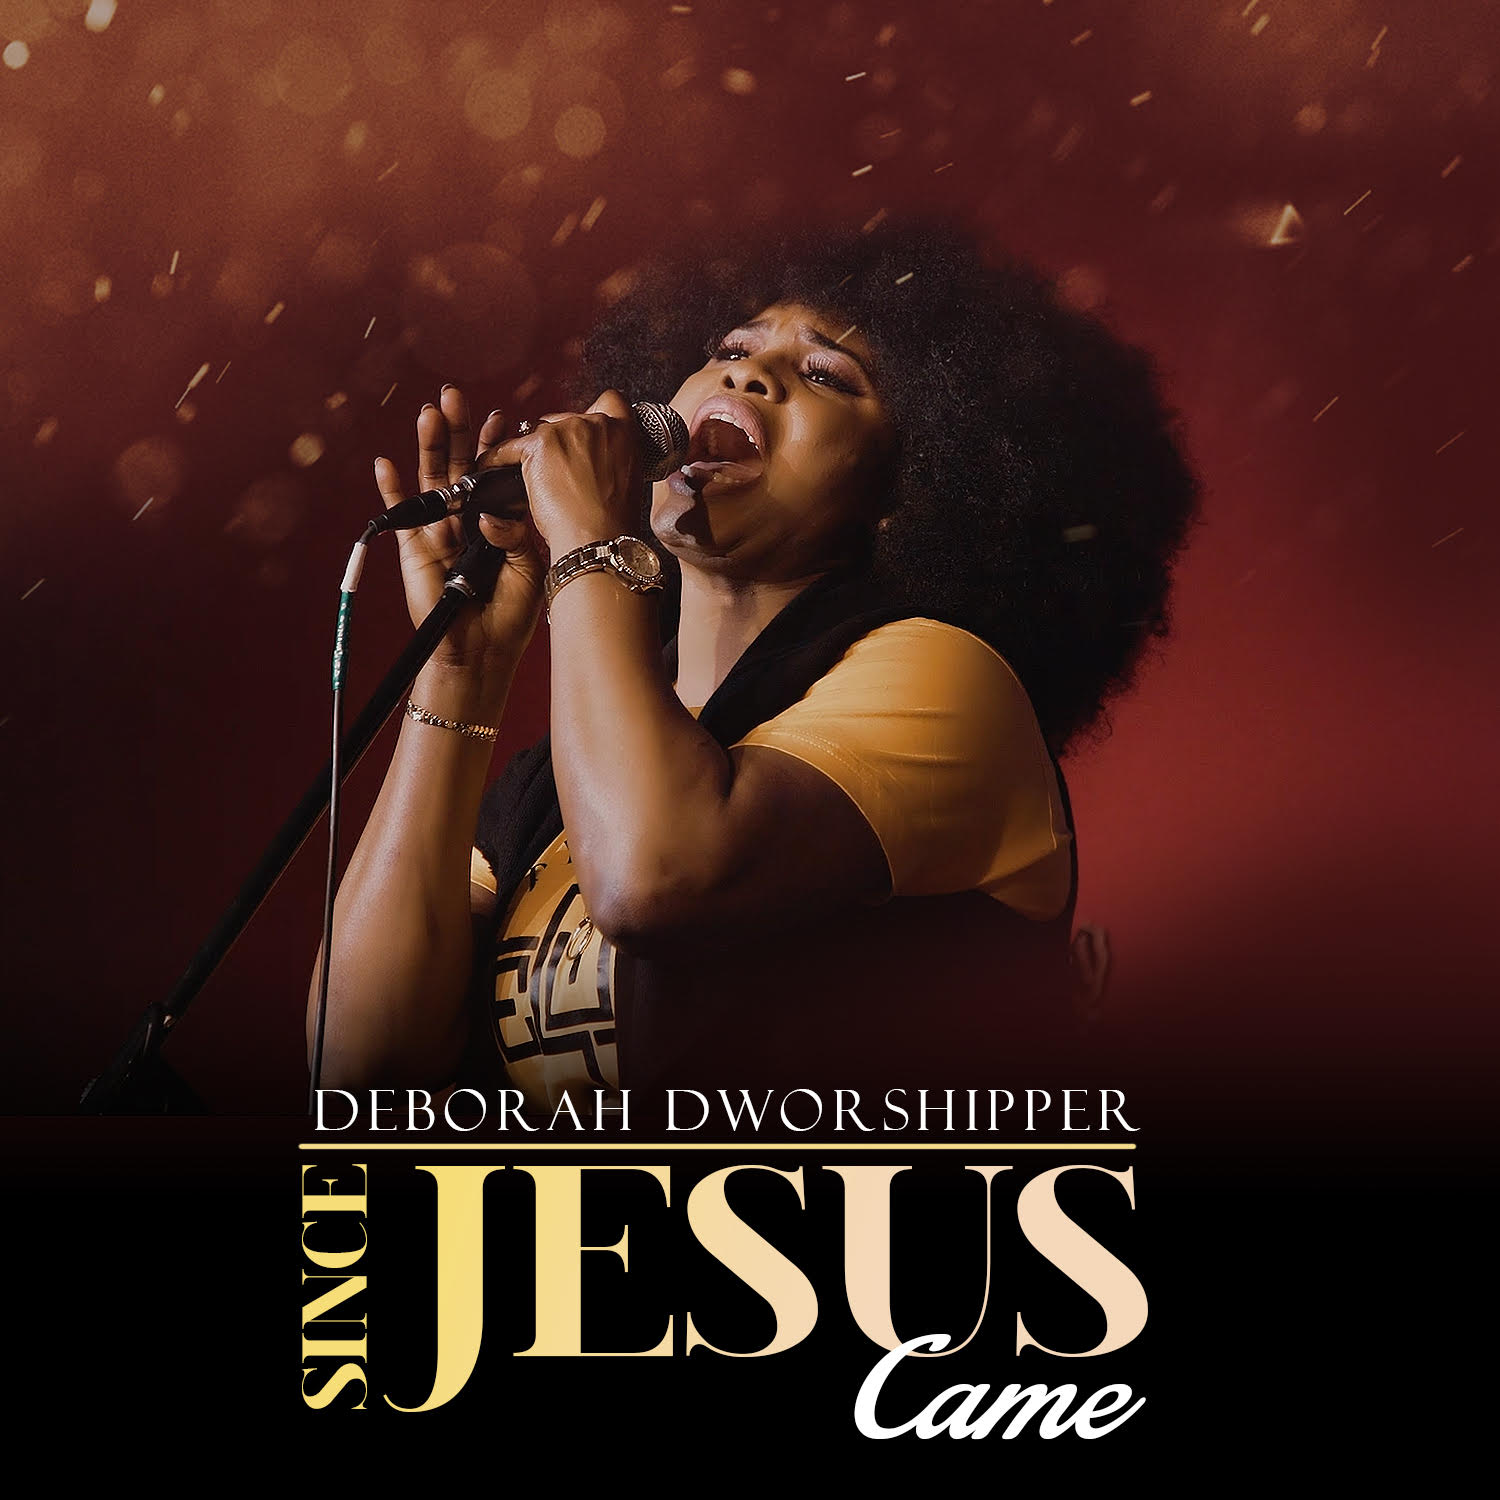 Deborah Dworshipper – Since Jesus Came + Amen